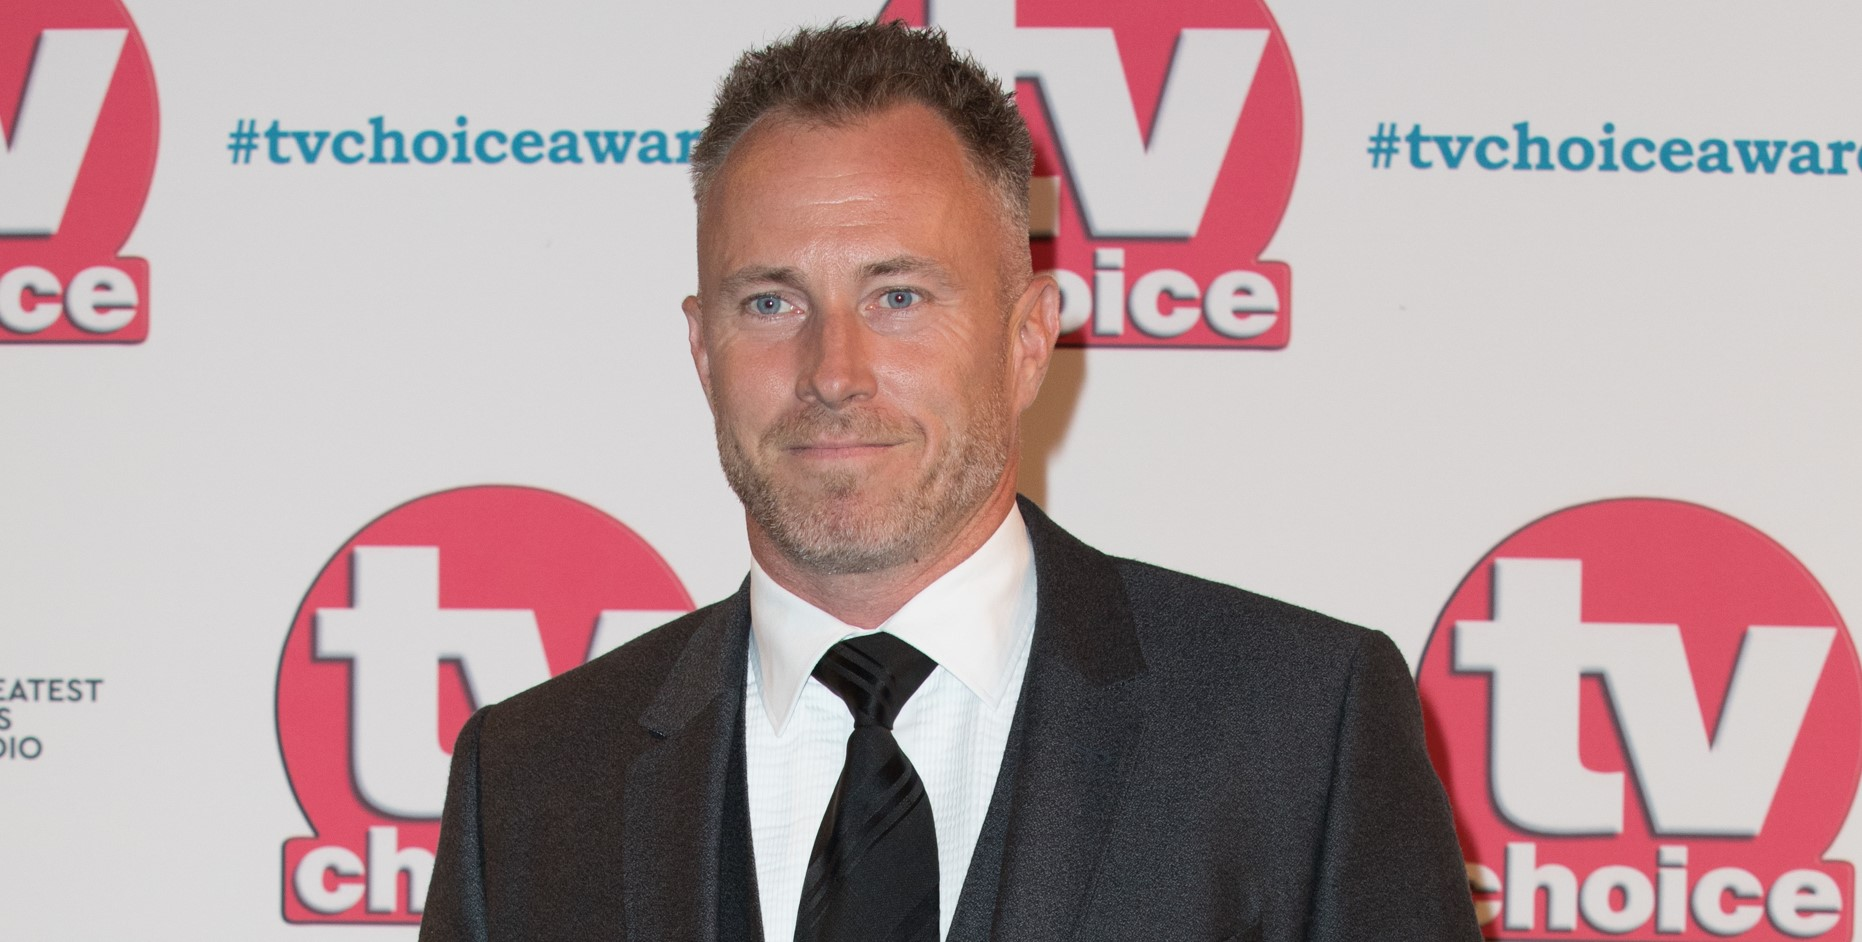 Former Strictly pro James Jordan lashes out at judges over latest elimination